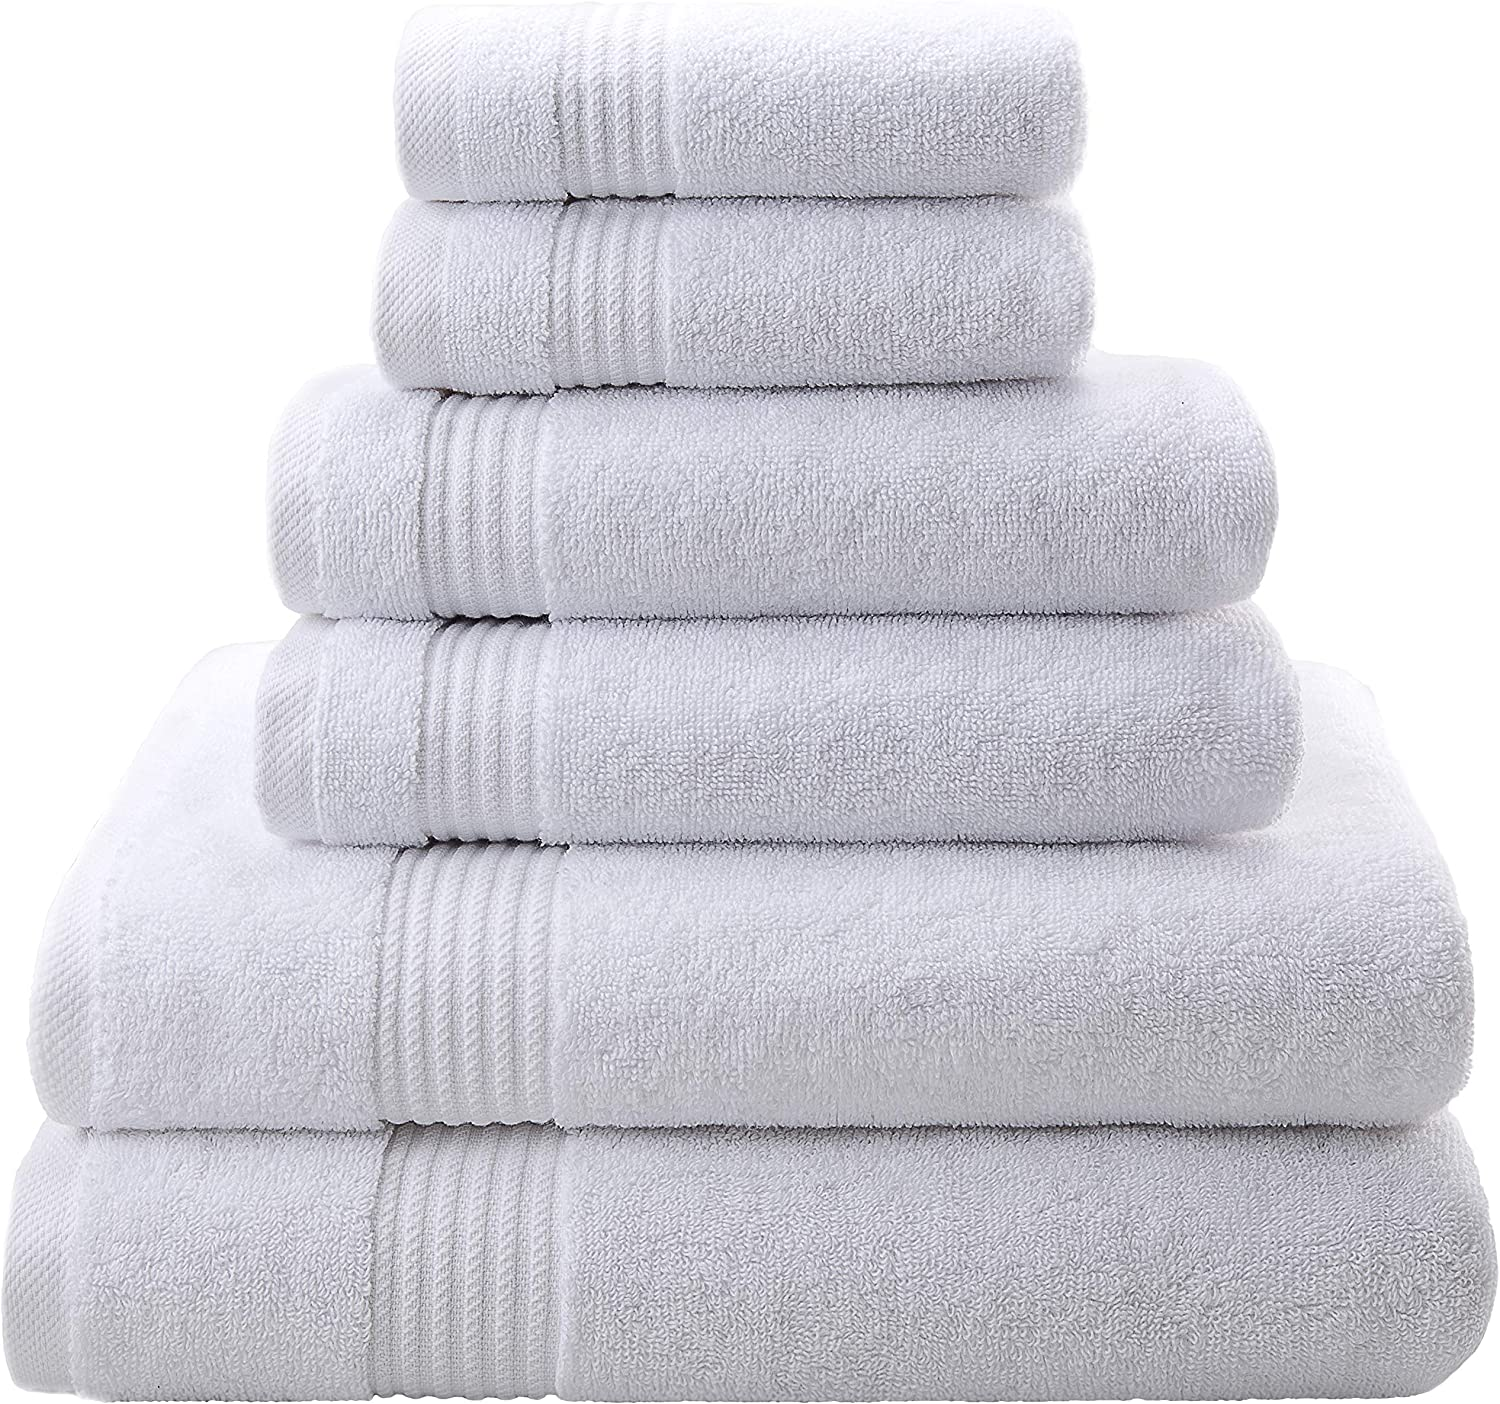 Premium, Luxury Hotel & Spa, Turkish Towel 100% Cotton 6-Piece Towel Set for Maximum Softness and Absorbency by American Veteran Towel (Snow White, 2019)